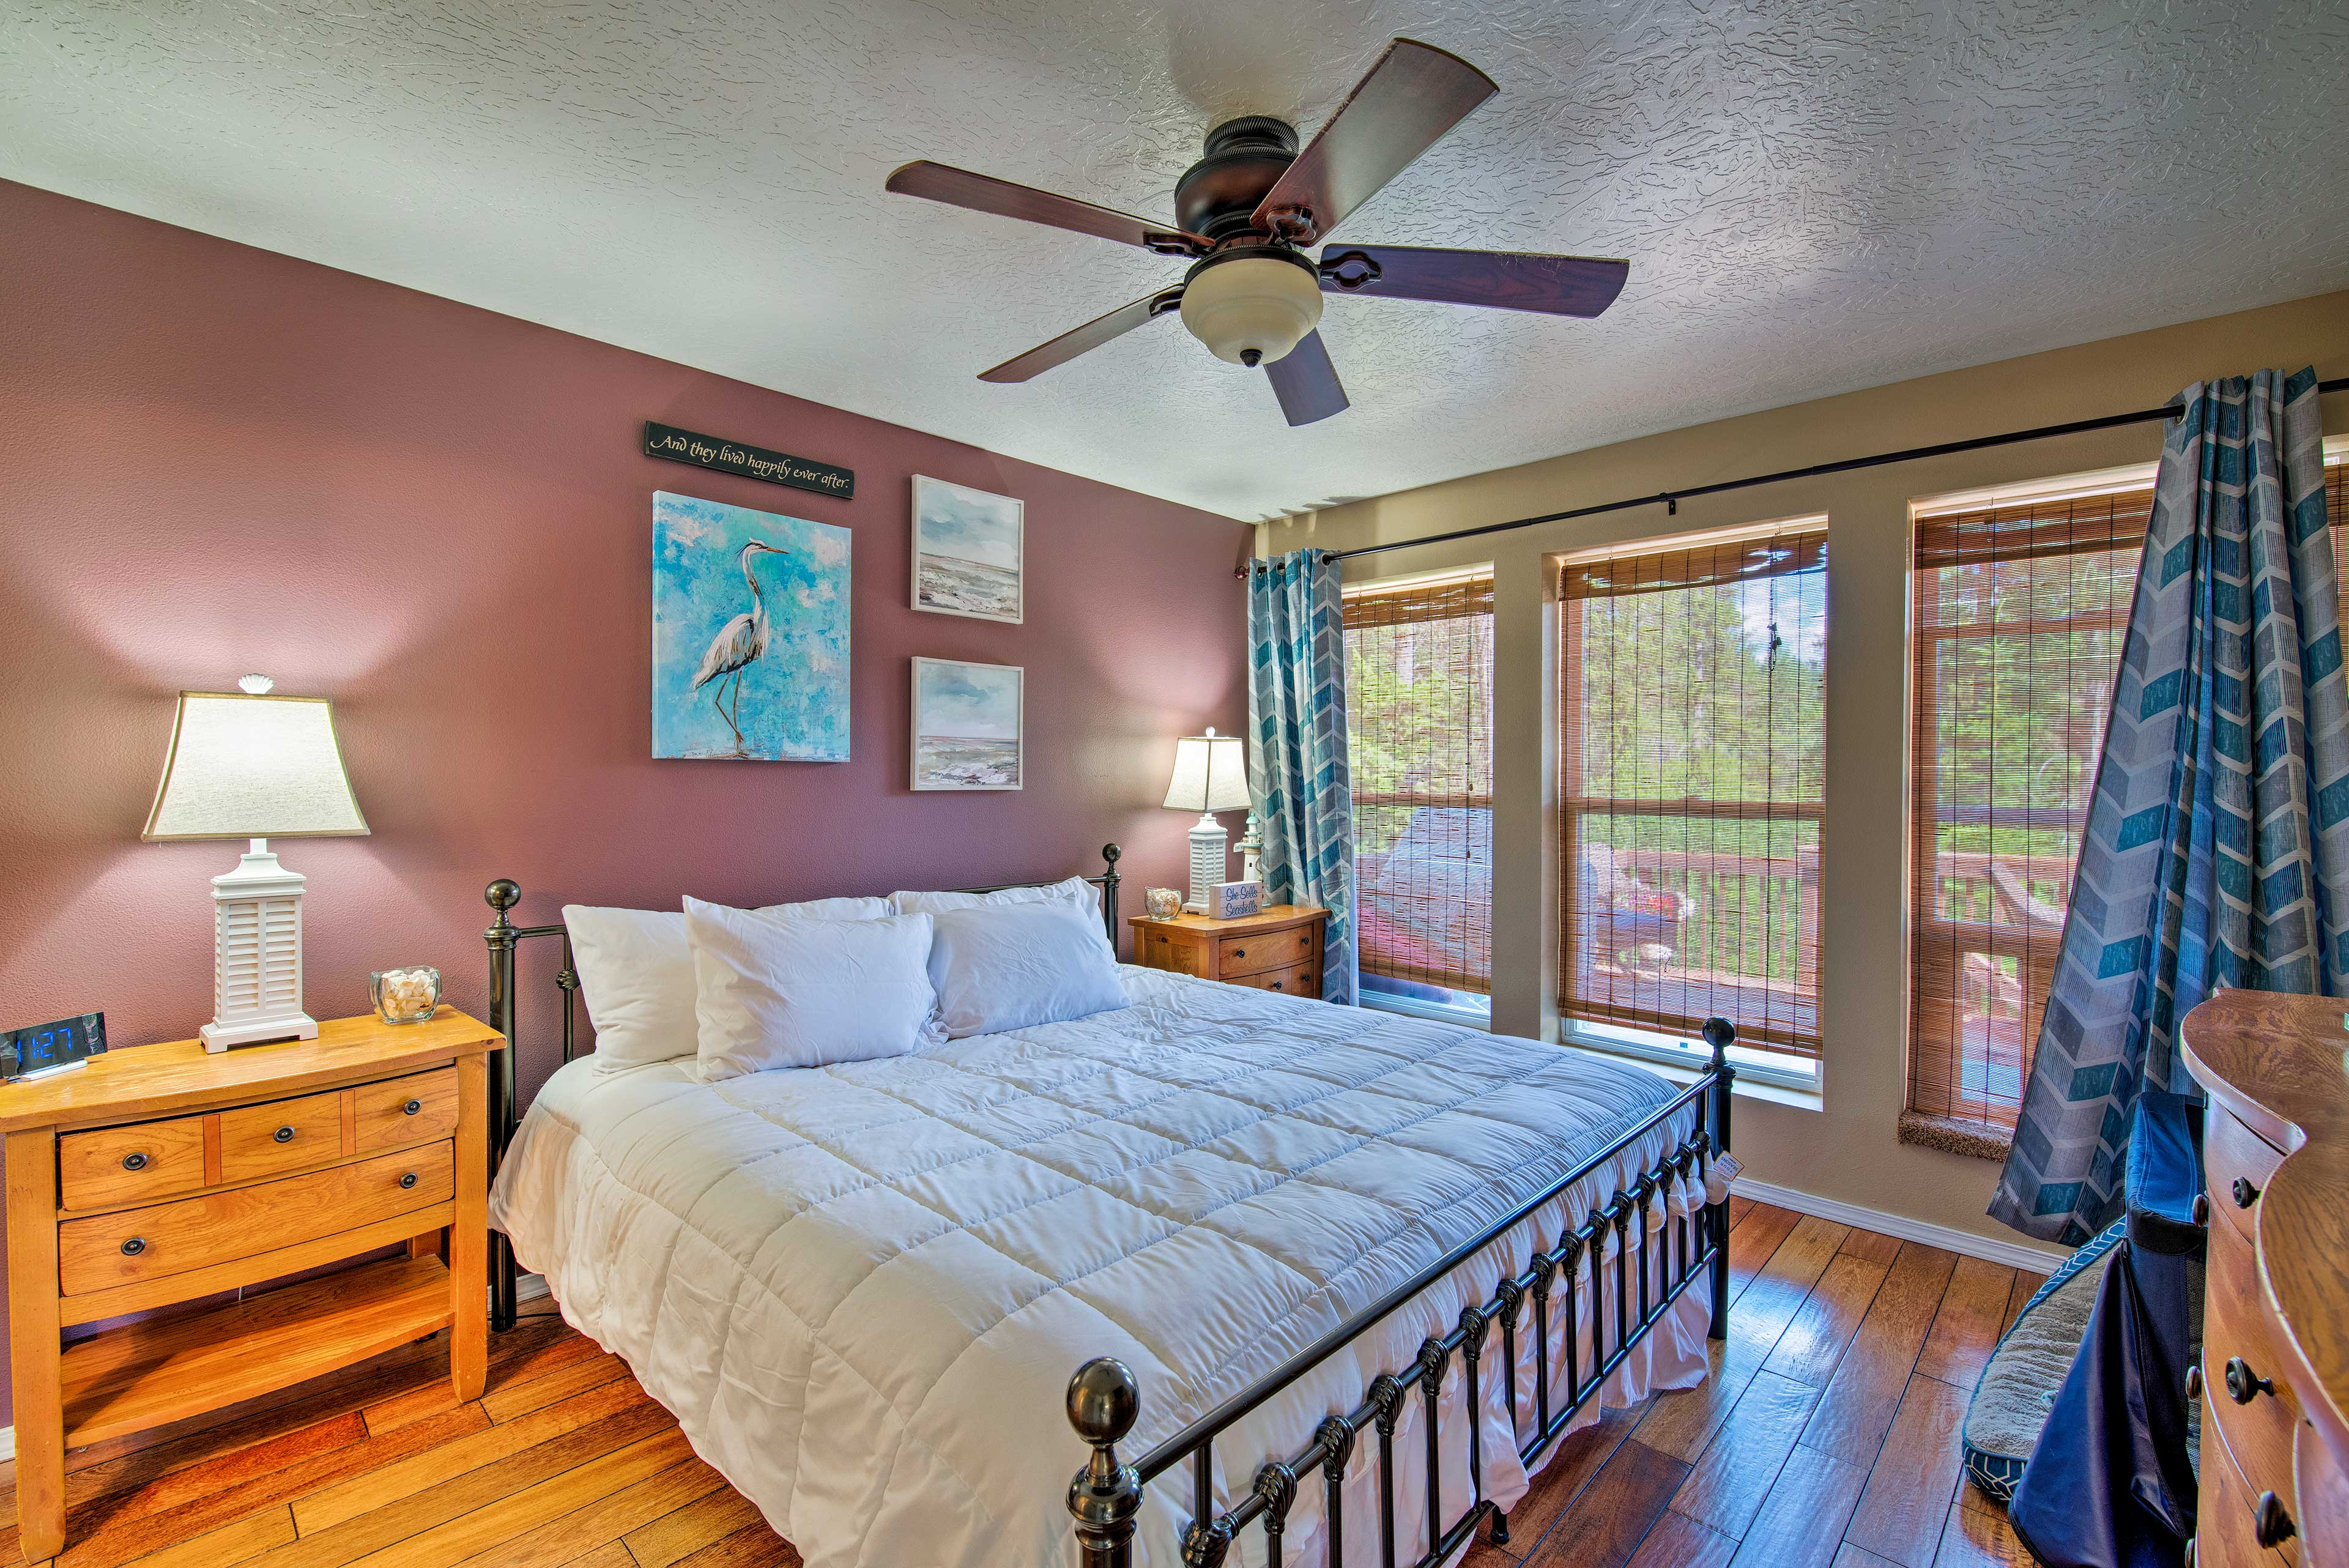 The master bedroom boasts a California King-sized bed.